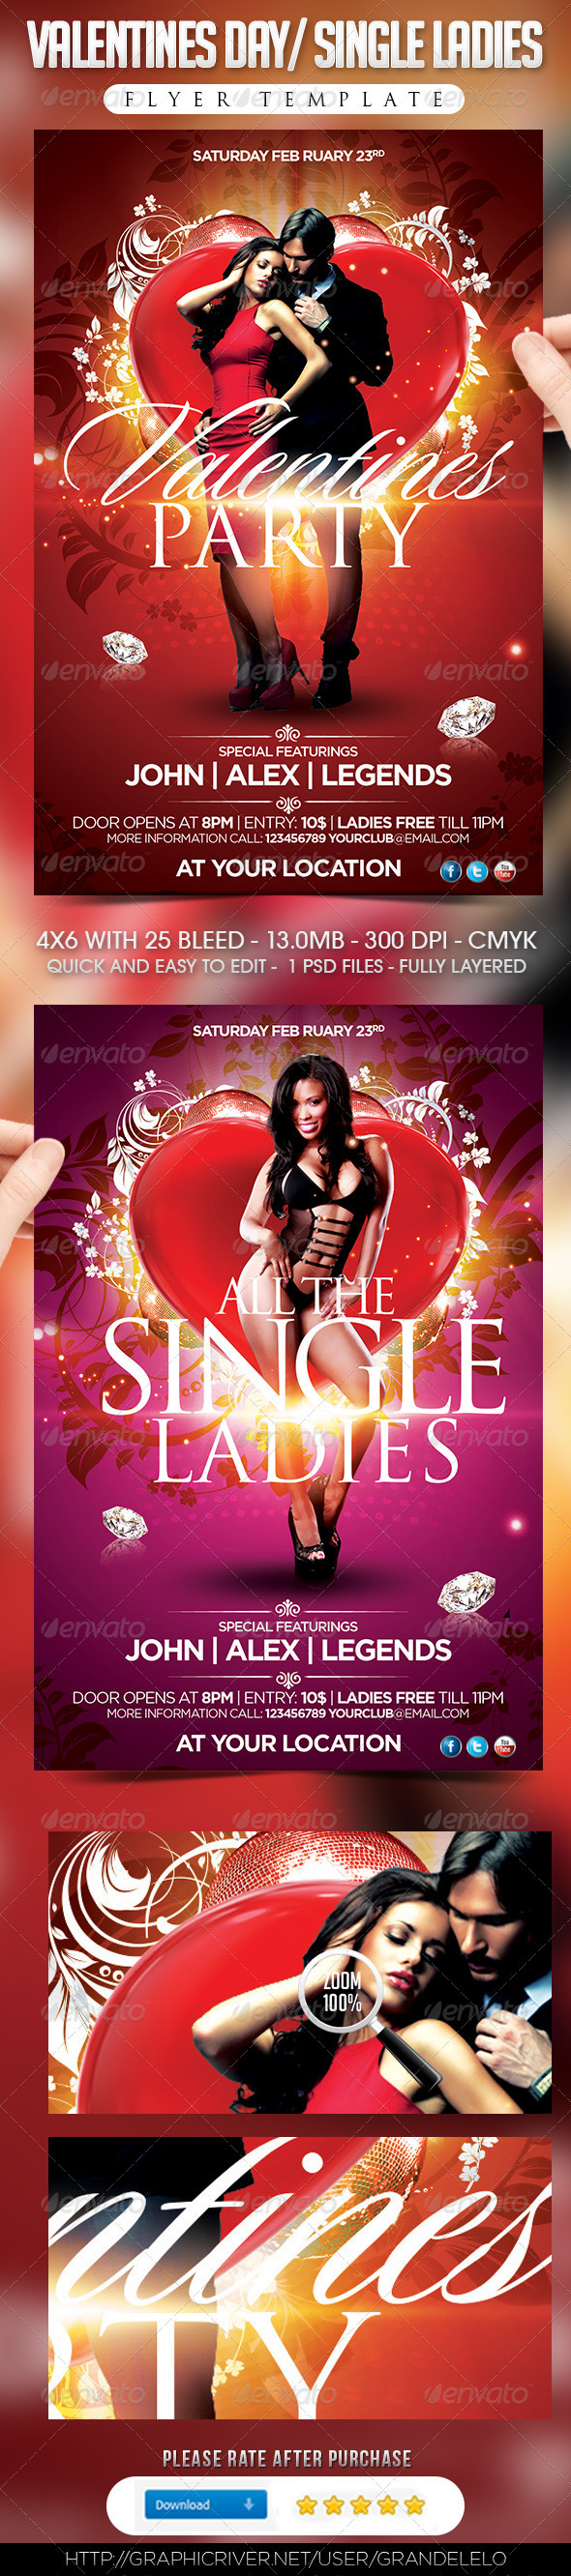 Valentines Day / Single Ladies Flyer Template - Clubs & Parties Events